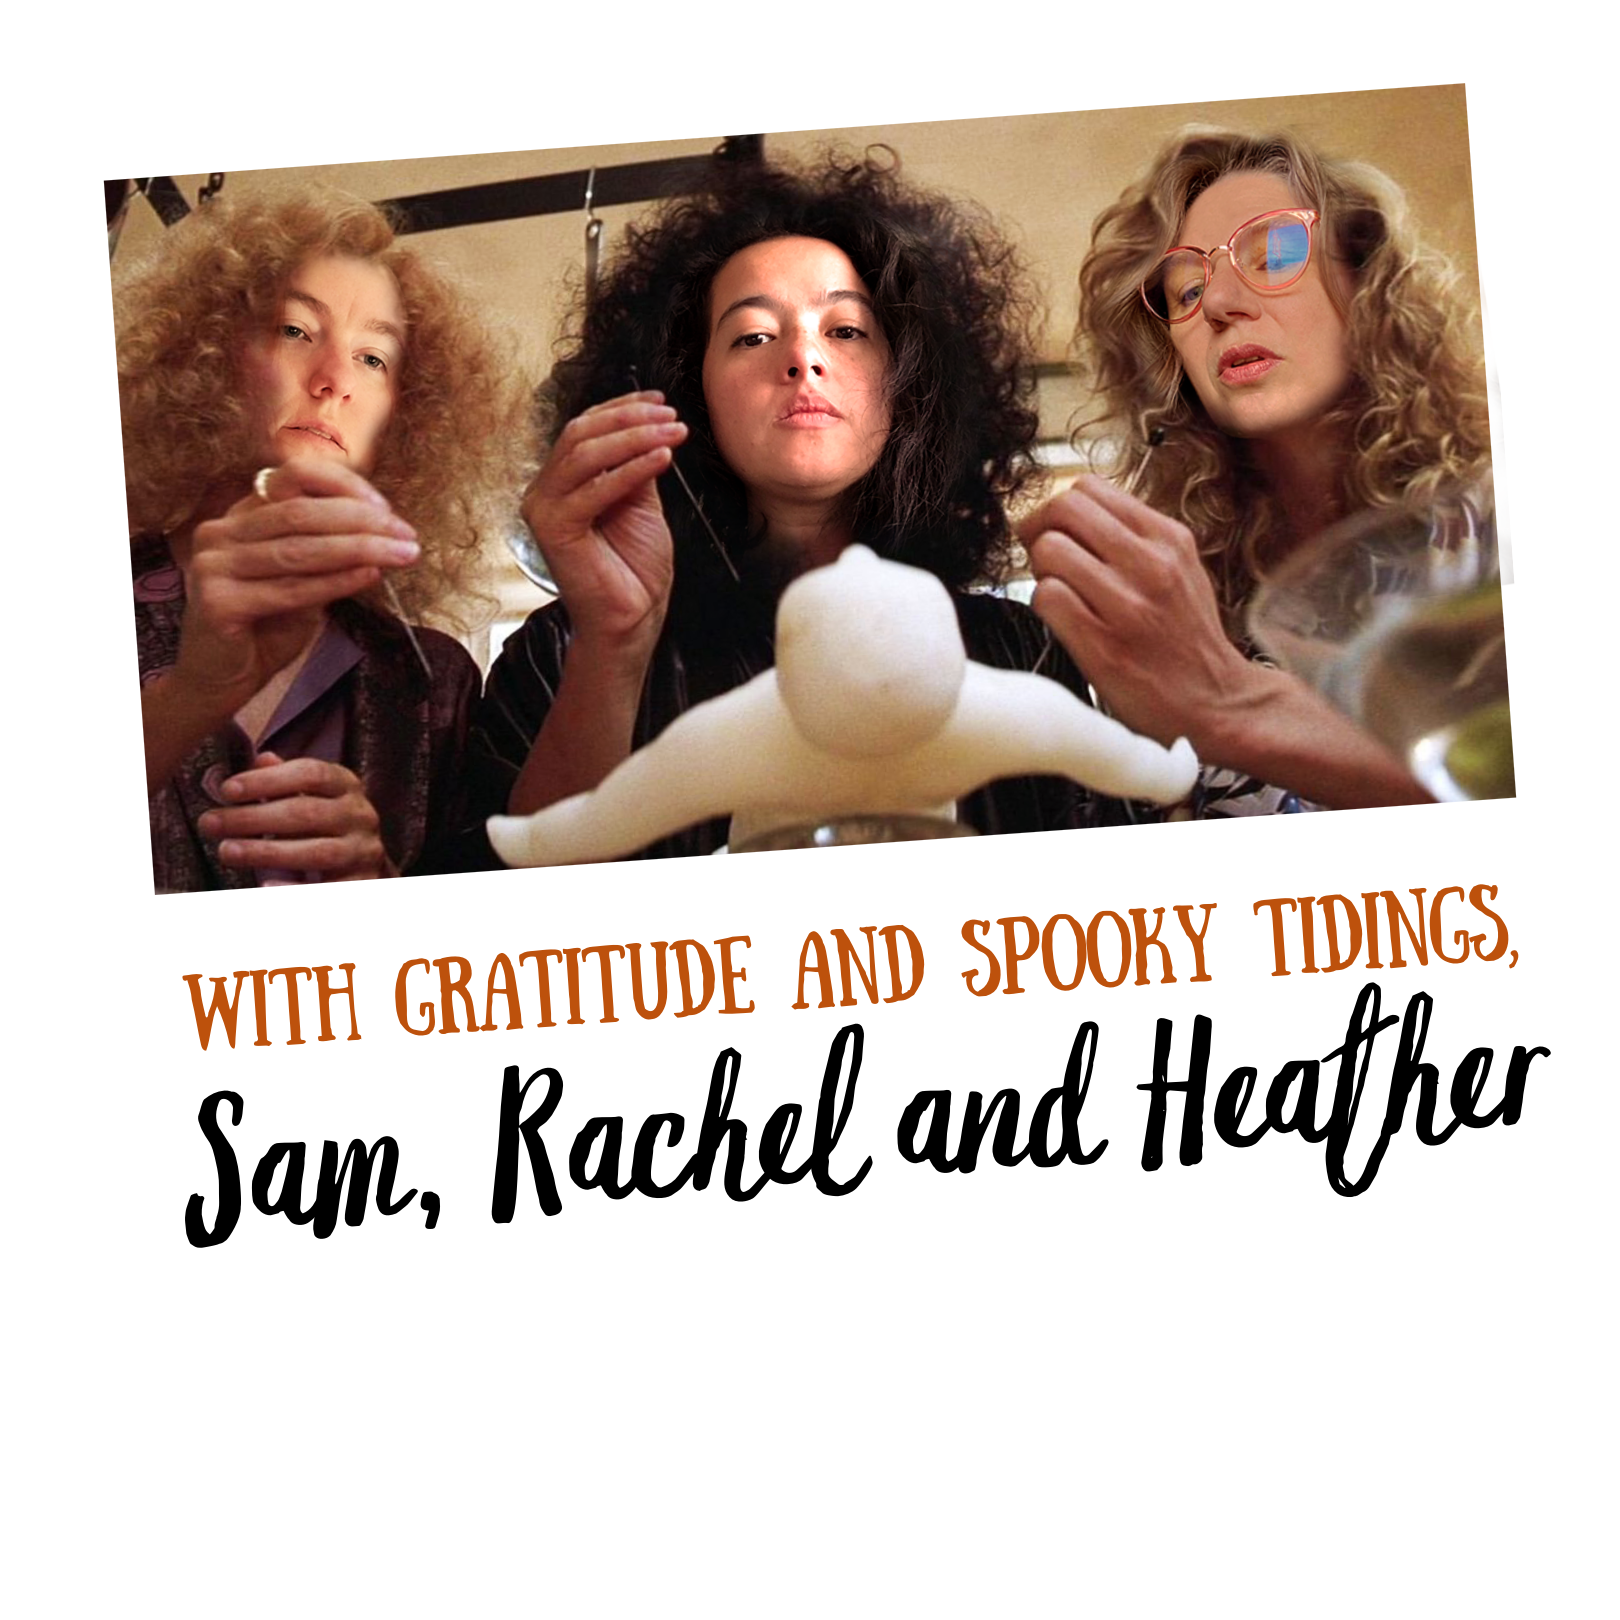 Photo of Sam, Rachel and Heather re-enacting a scene form the Witches of Eastwick.